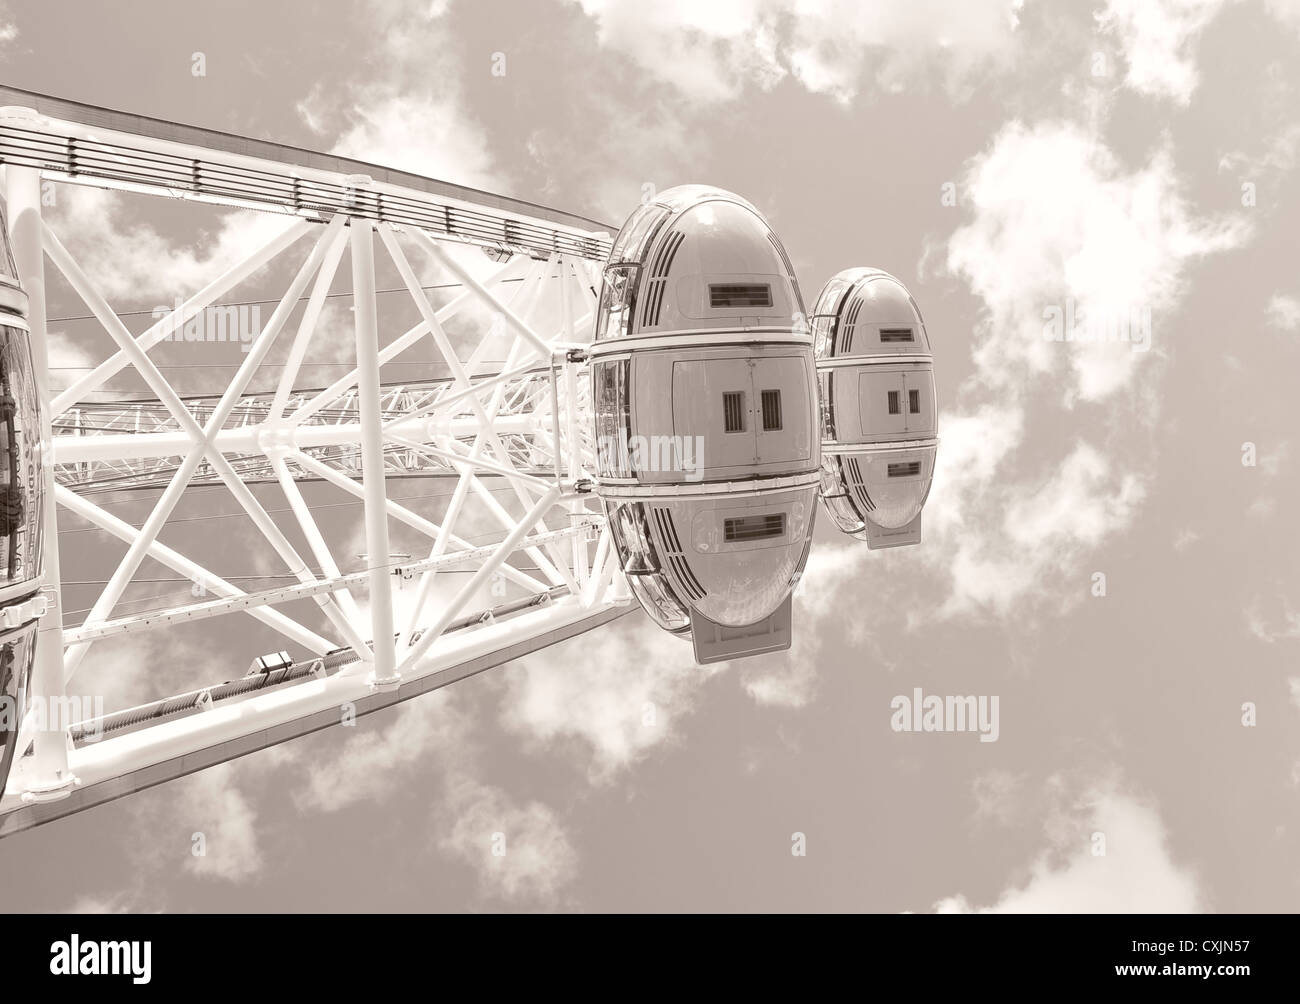 London Eye carriage from below - Stock Image